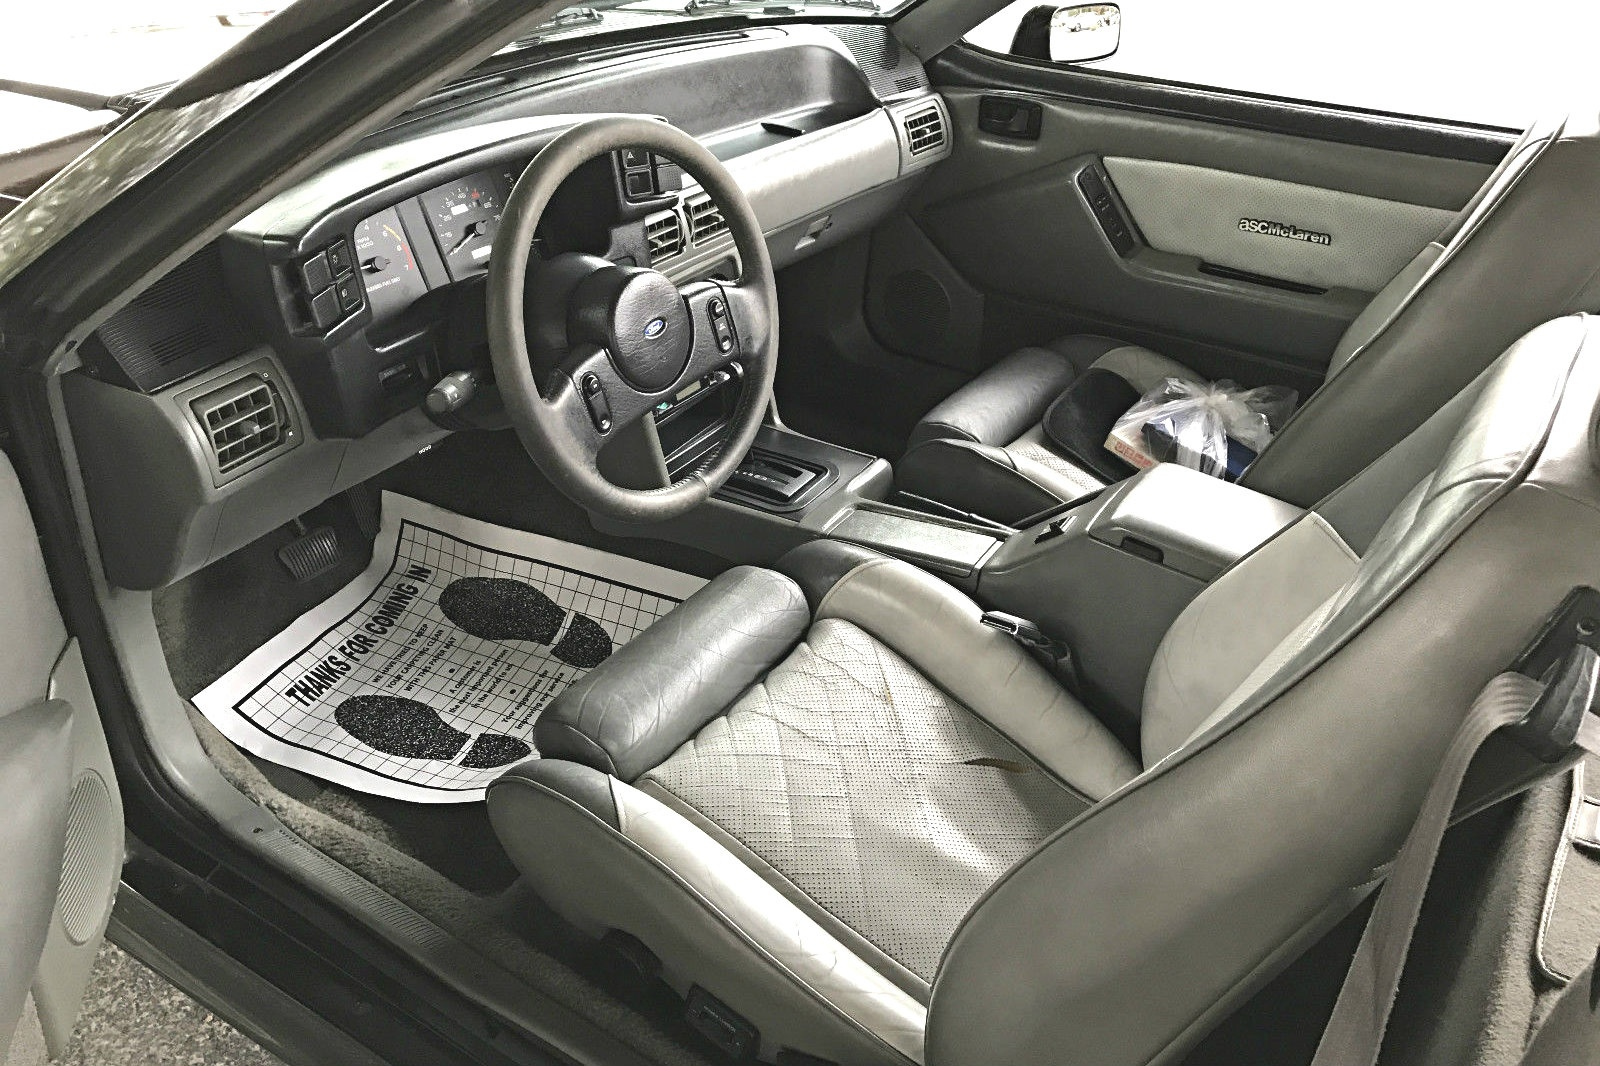 With A Typical Fox Body Earance The Interior Does Have Few Features That Are Mclaren Specific Seats And Door Panels Covered In Perforated